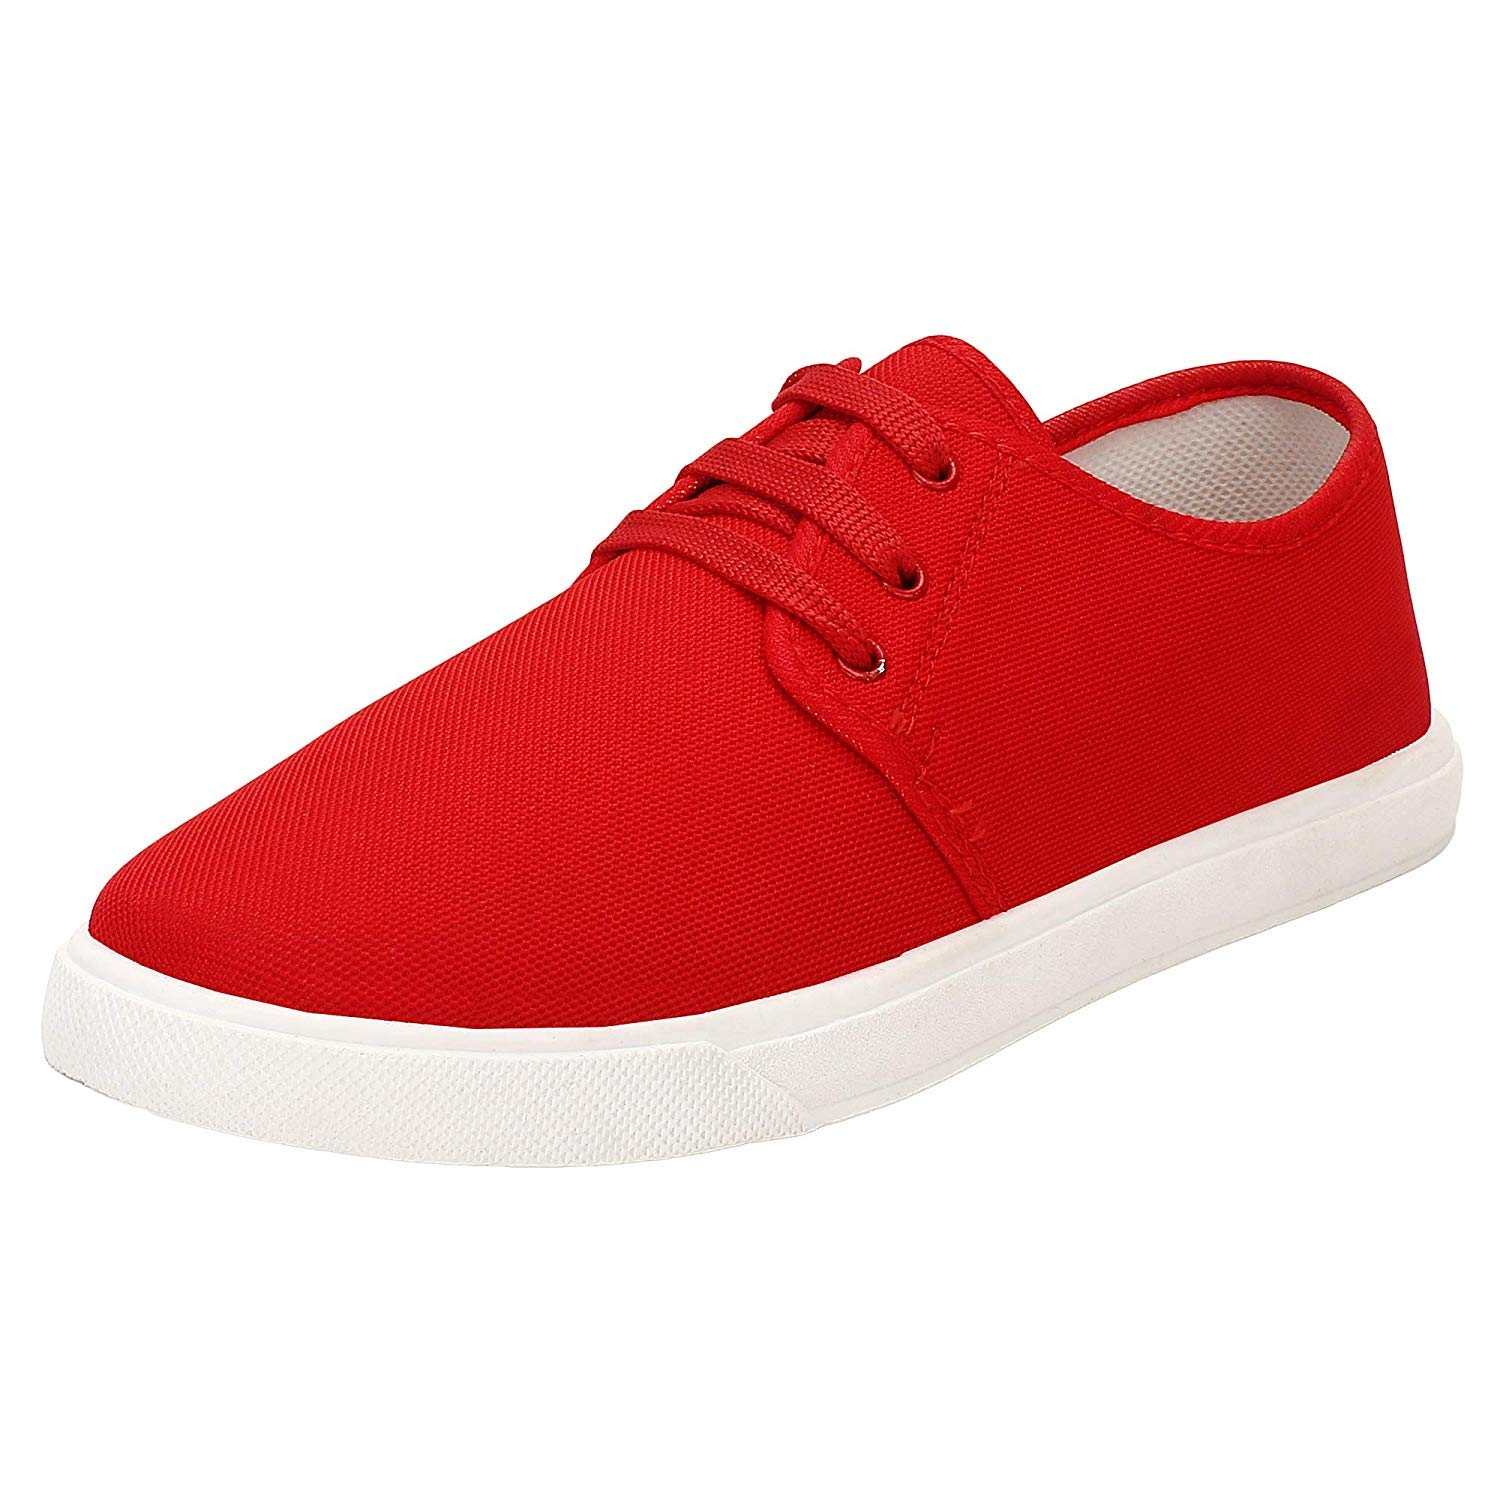 red sneakers for men